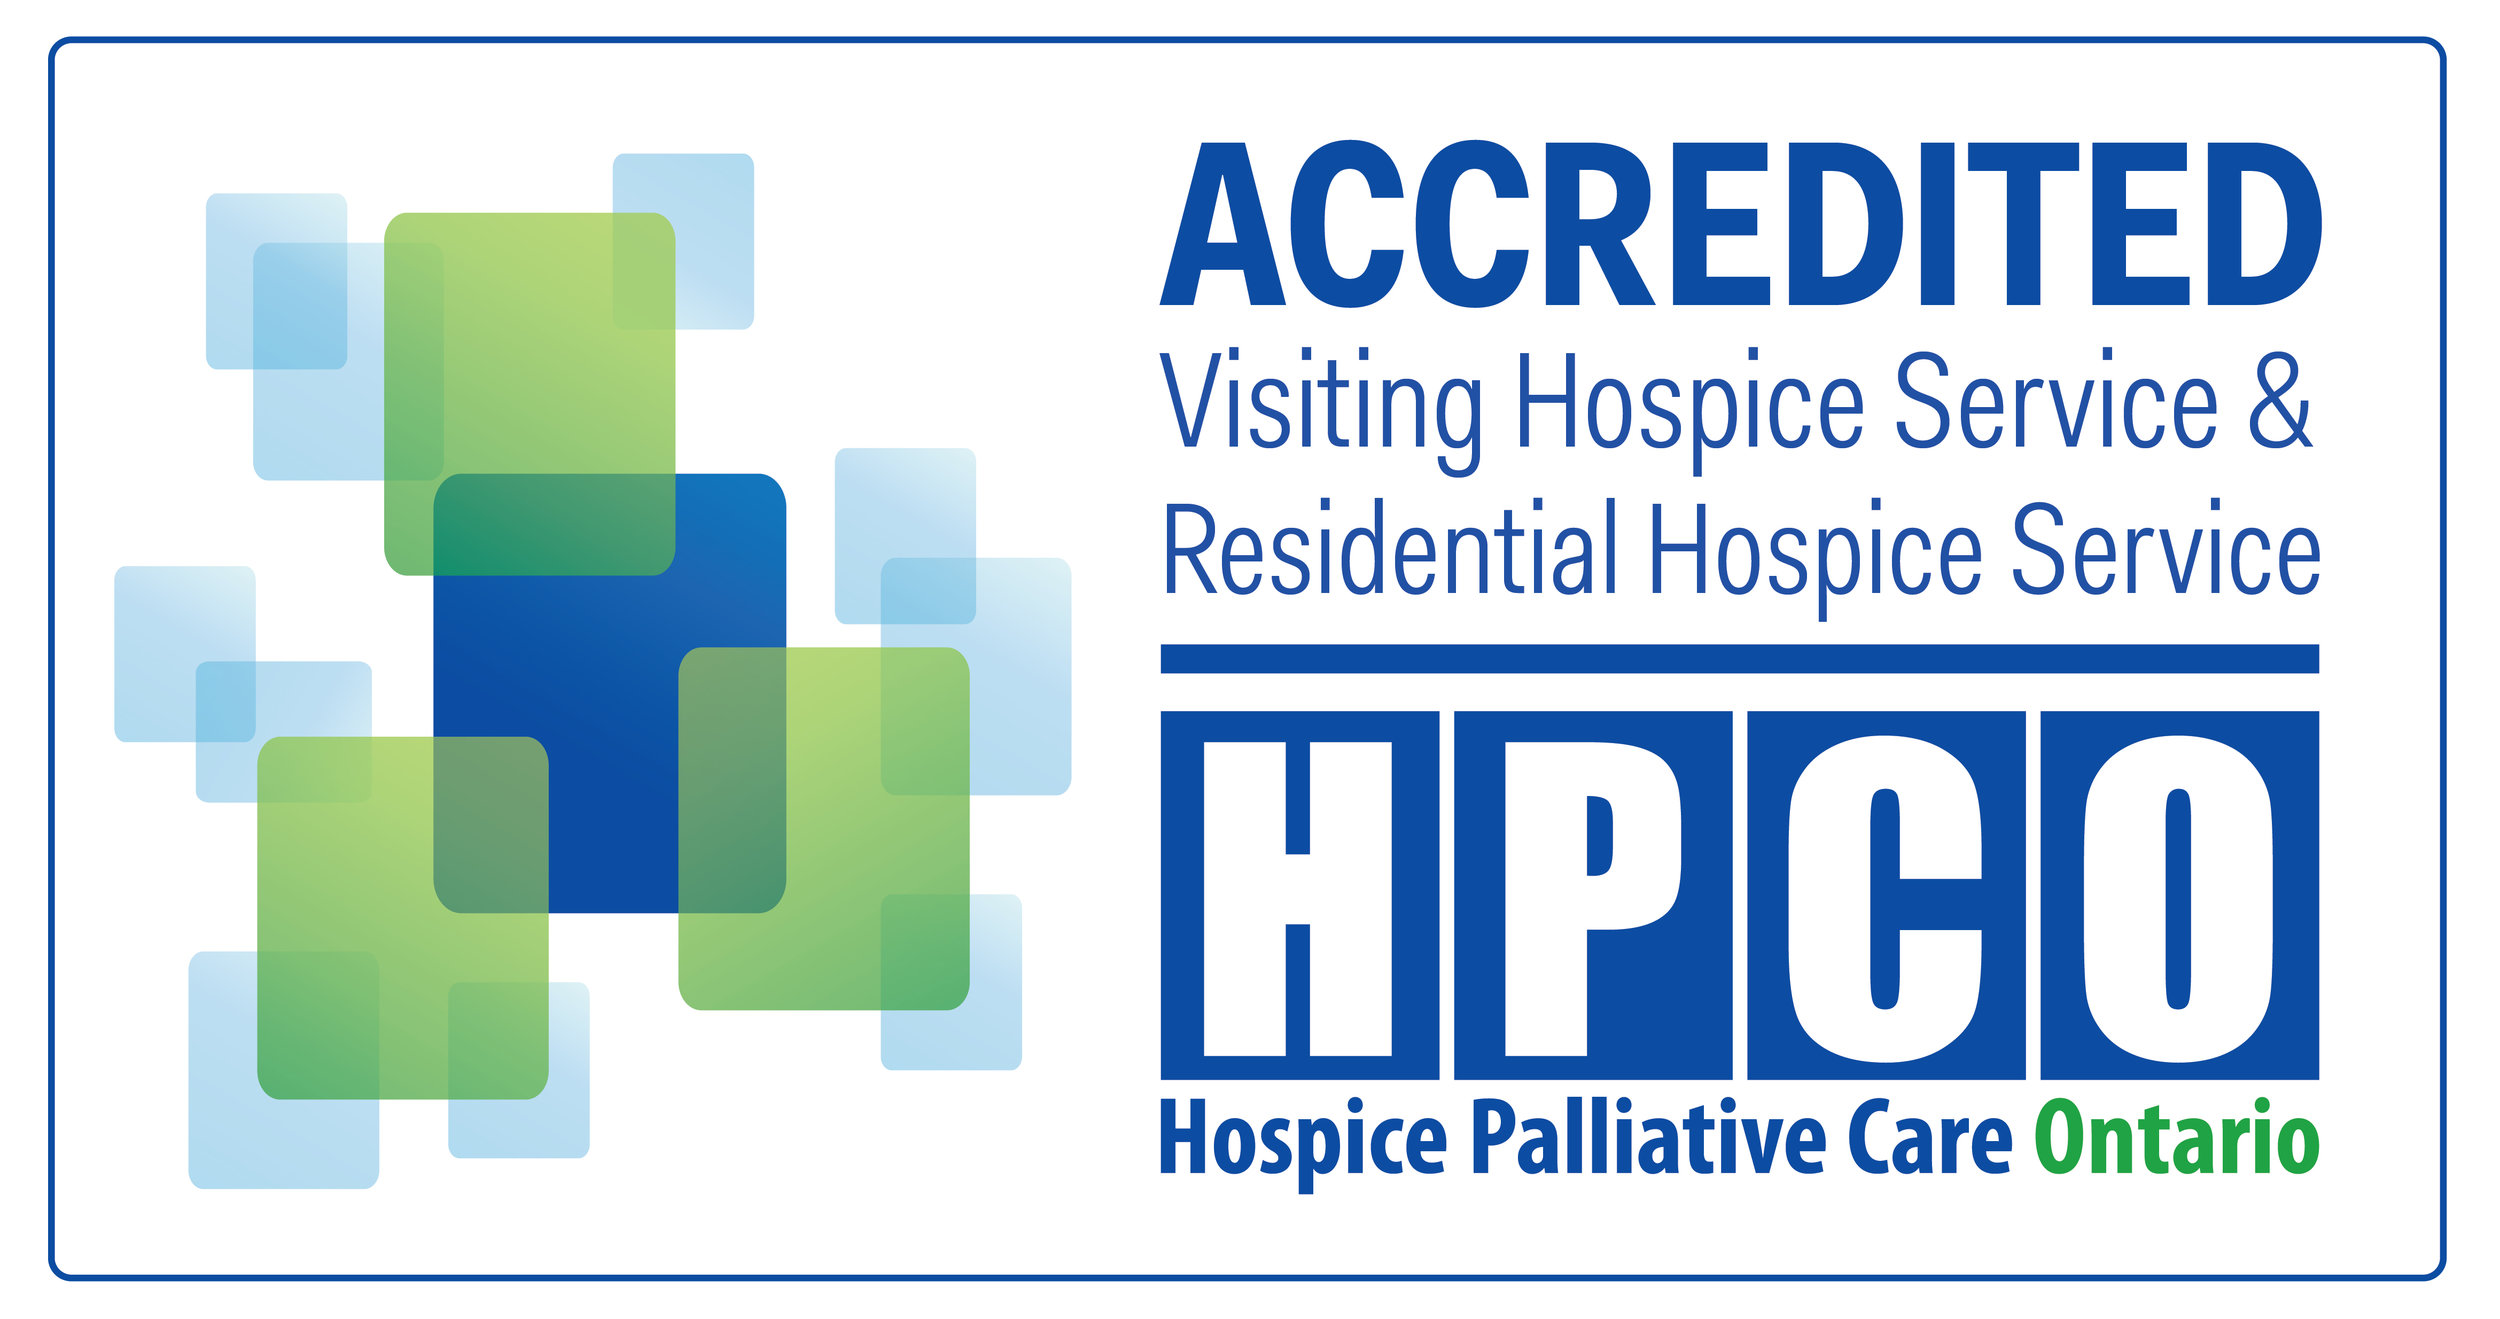 HPCO_accredited_visiting_residential_20151127-01.jpg